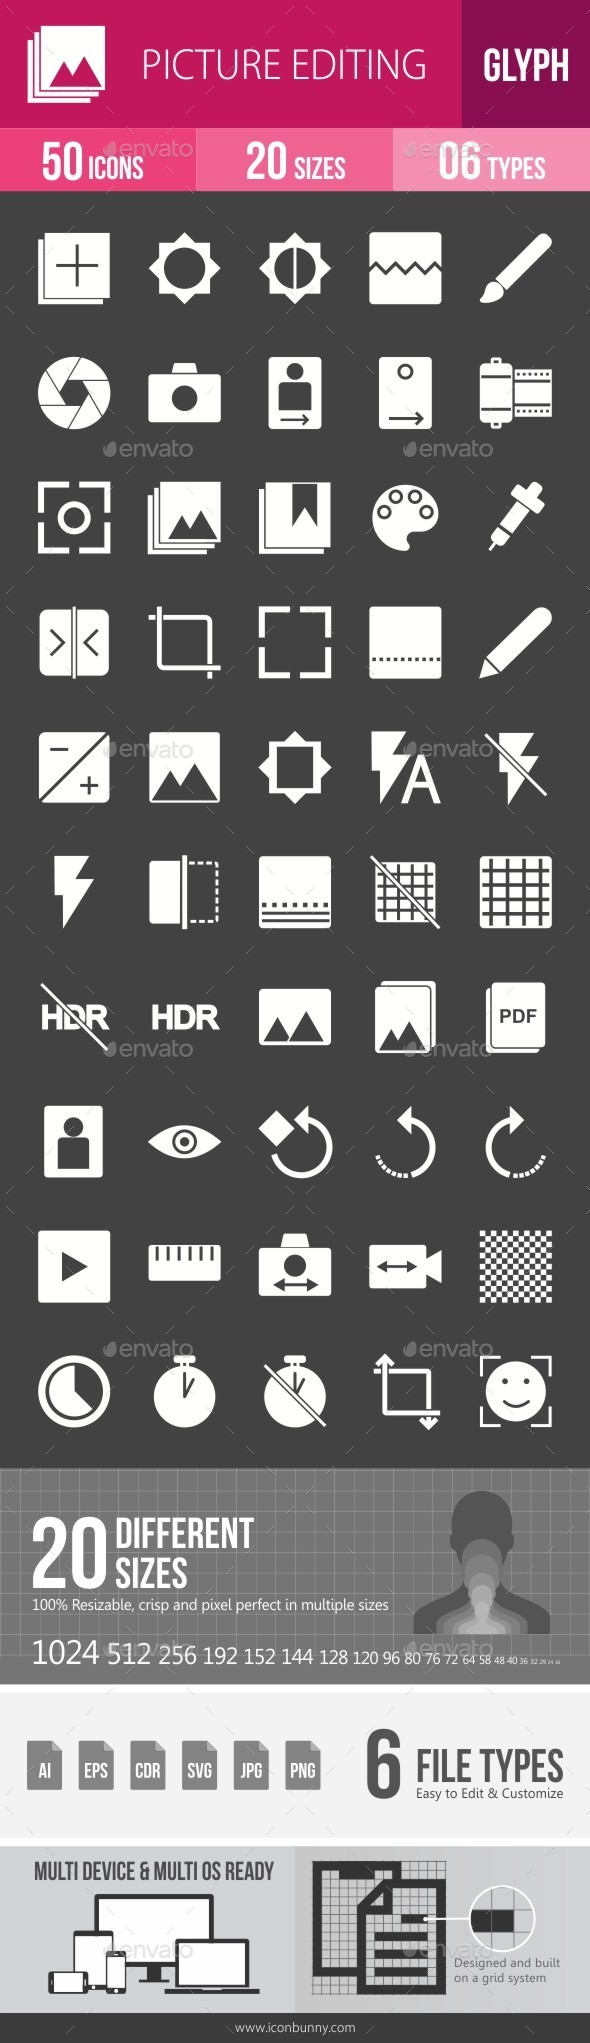 Picture Editing Glyph Inverted Icons - Icons